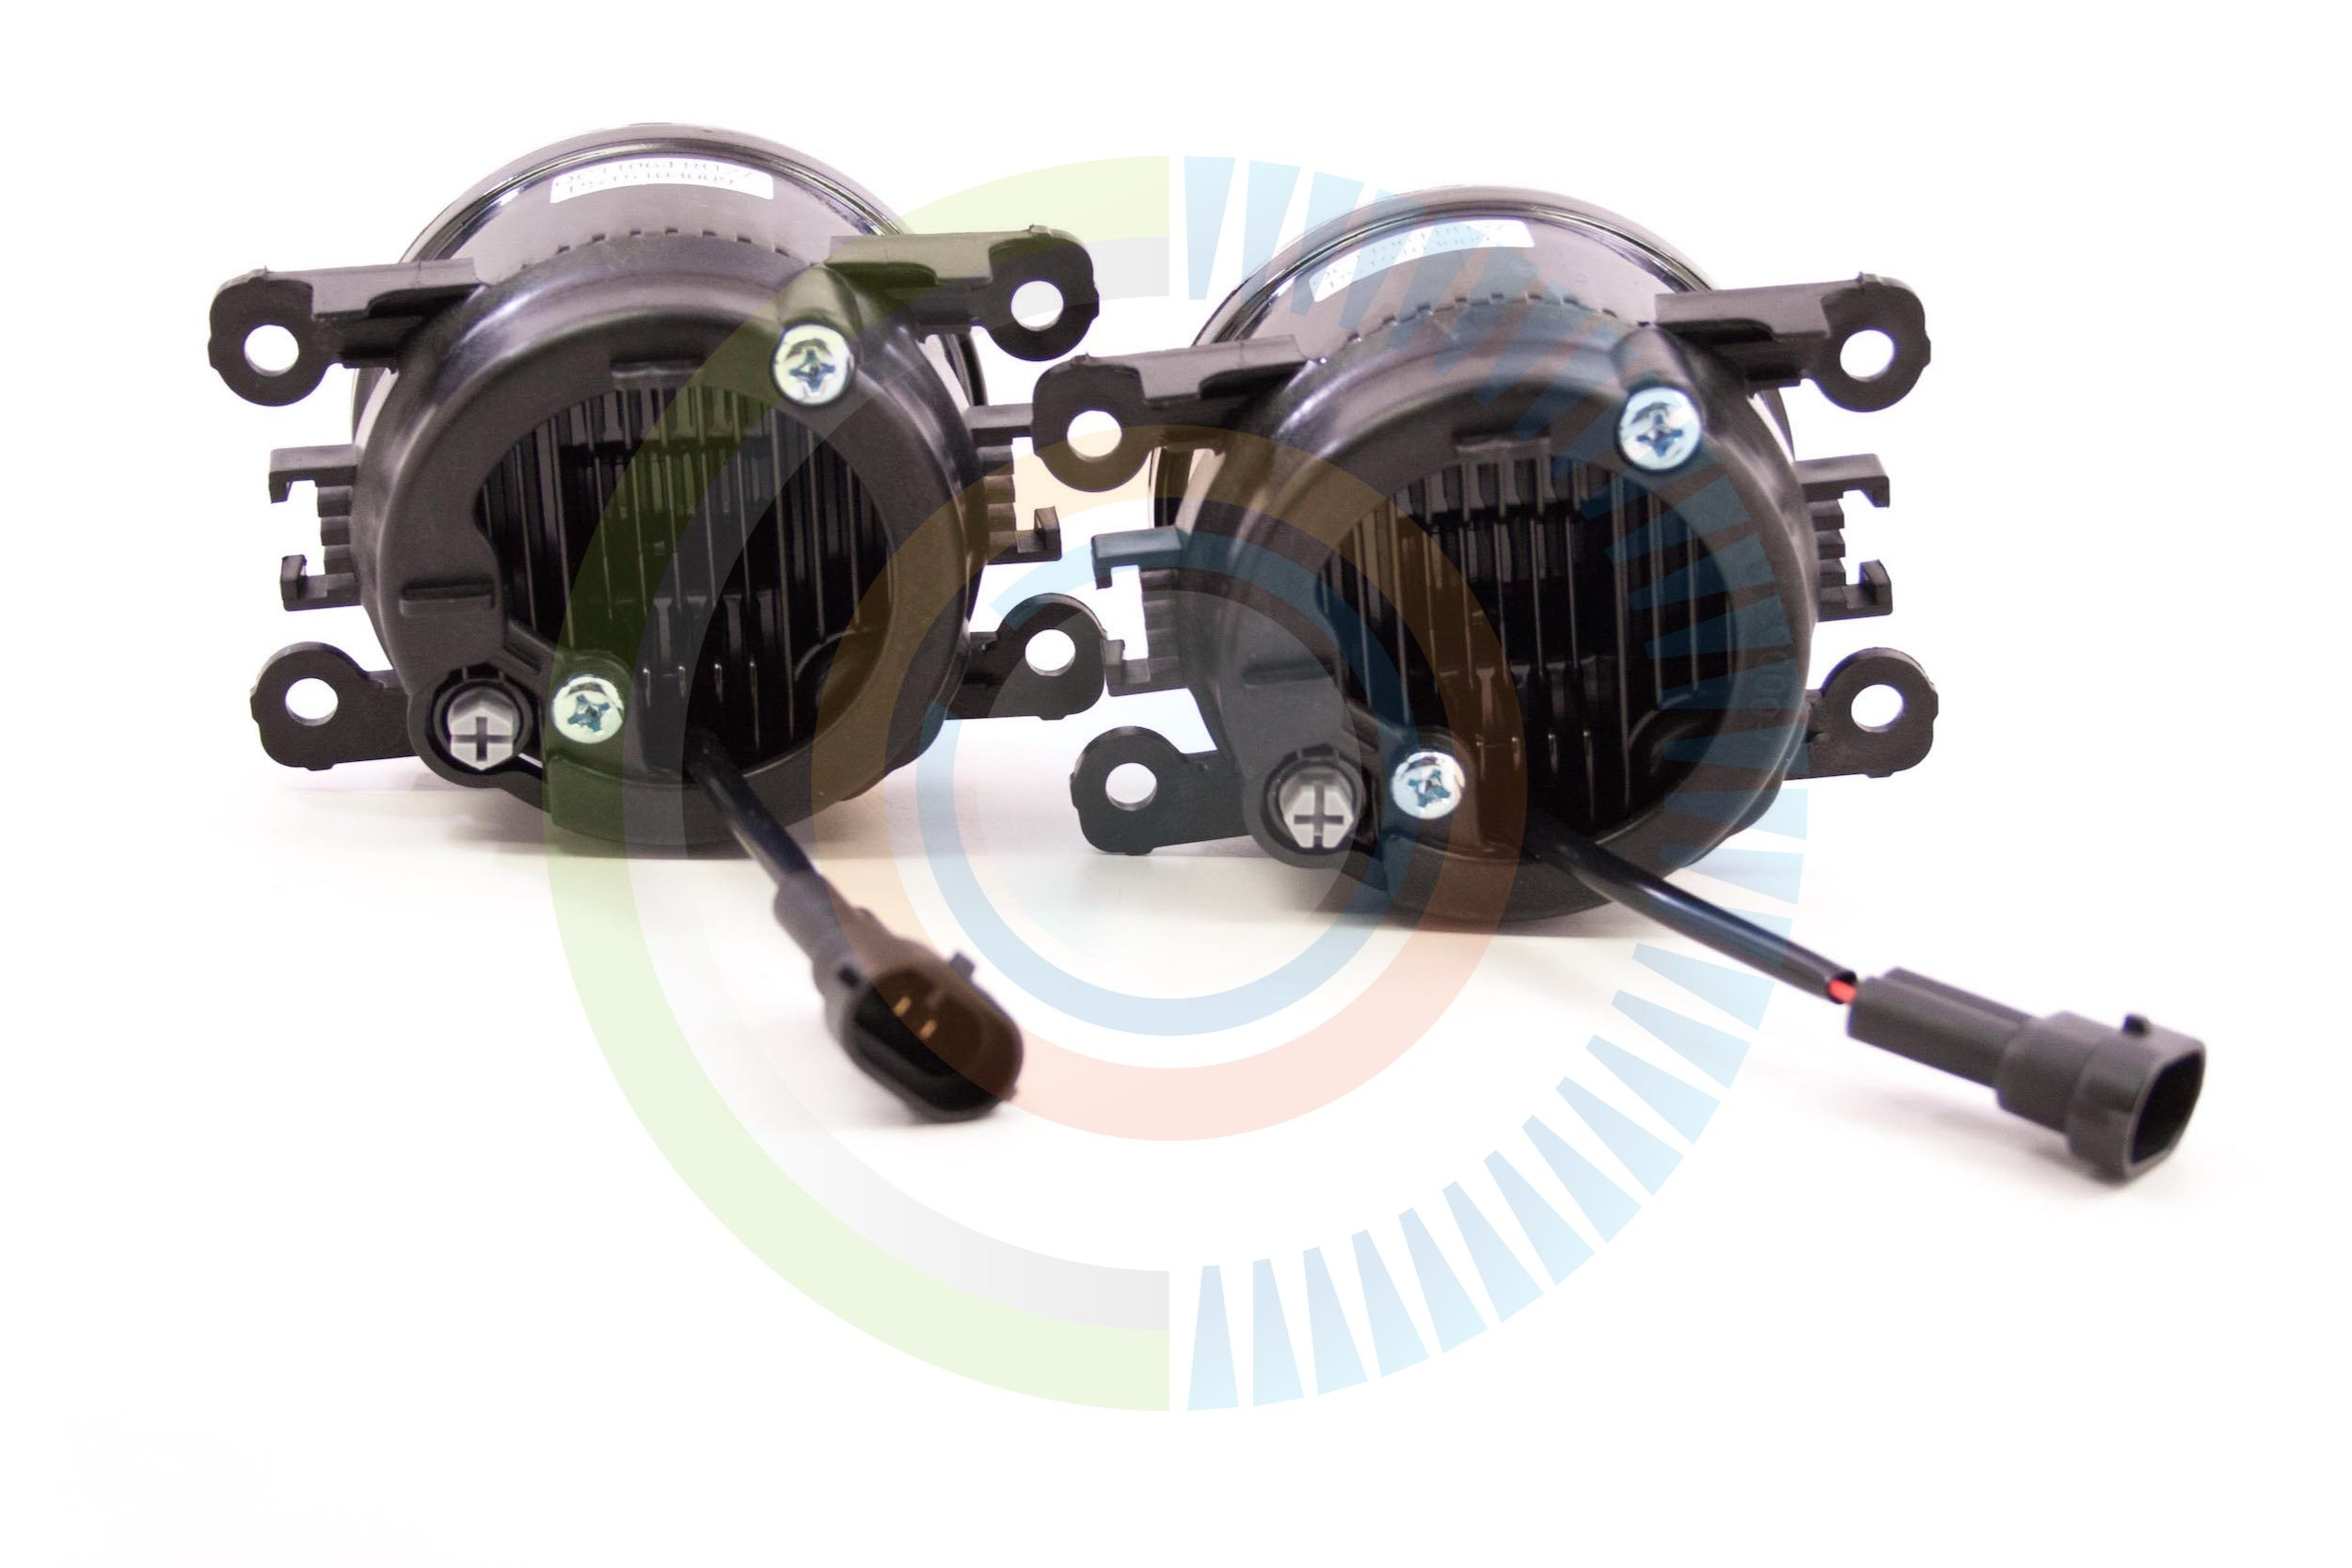 Morimoto Xb Led Fog Lights Acura Round Winnipeg Hid 2006 Tl Headlamp Wiring Harness Type S 4